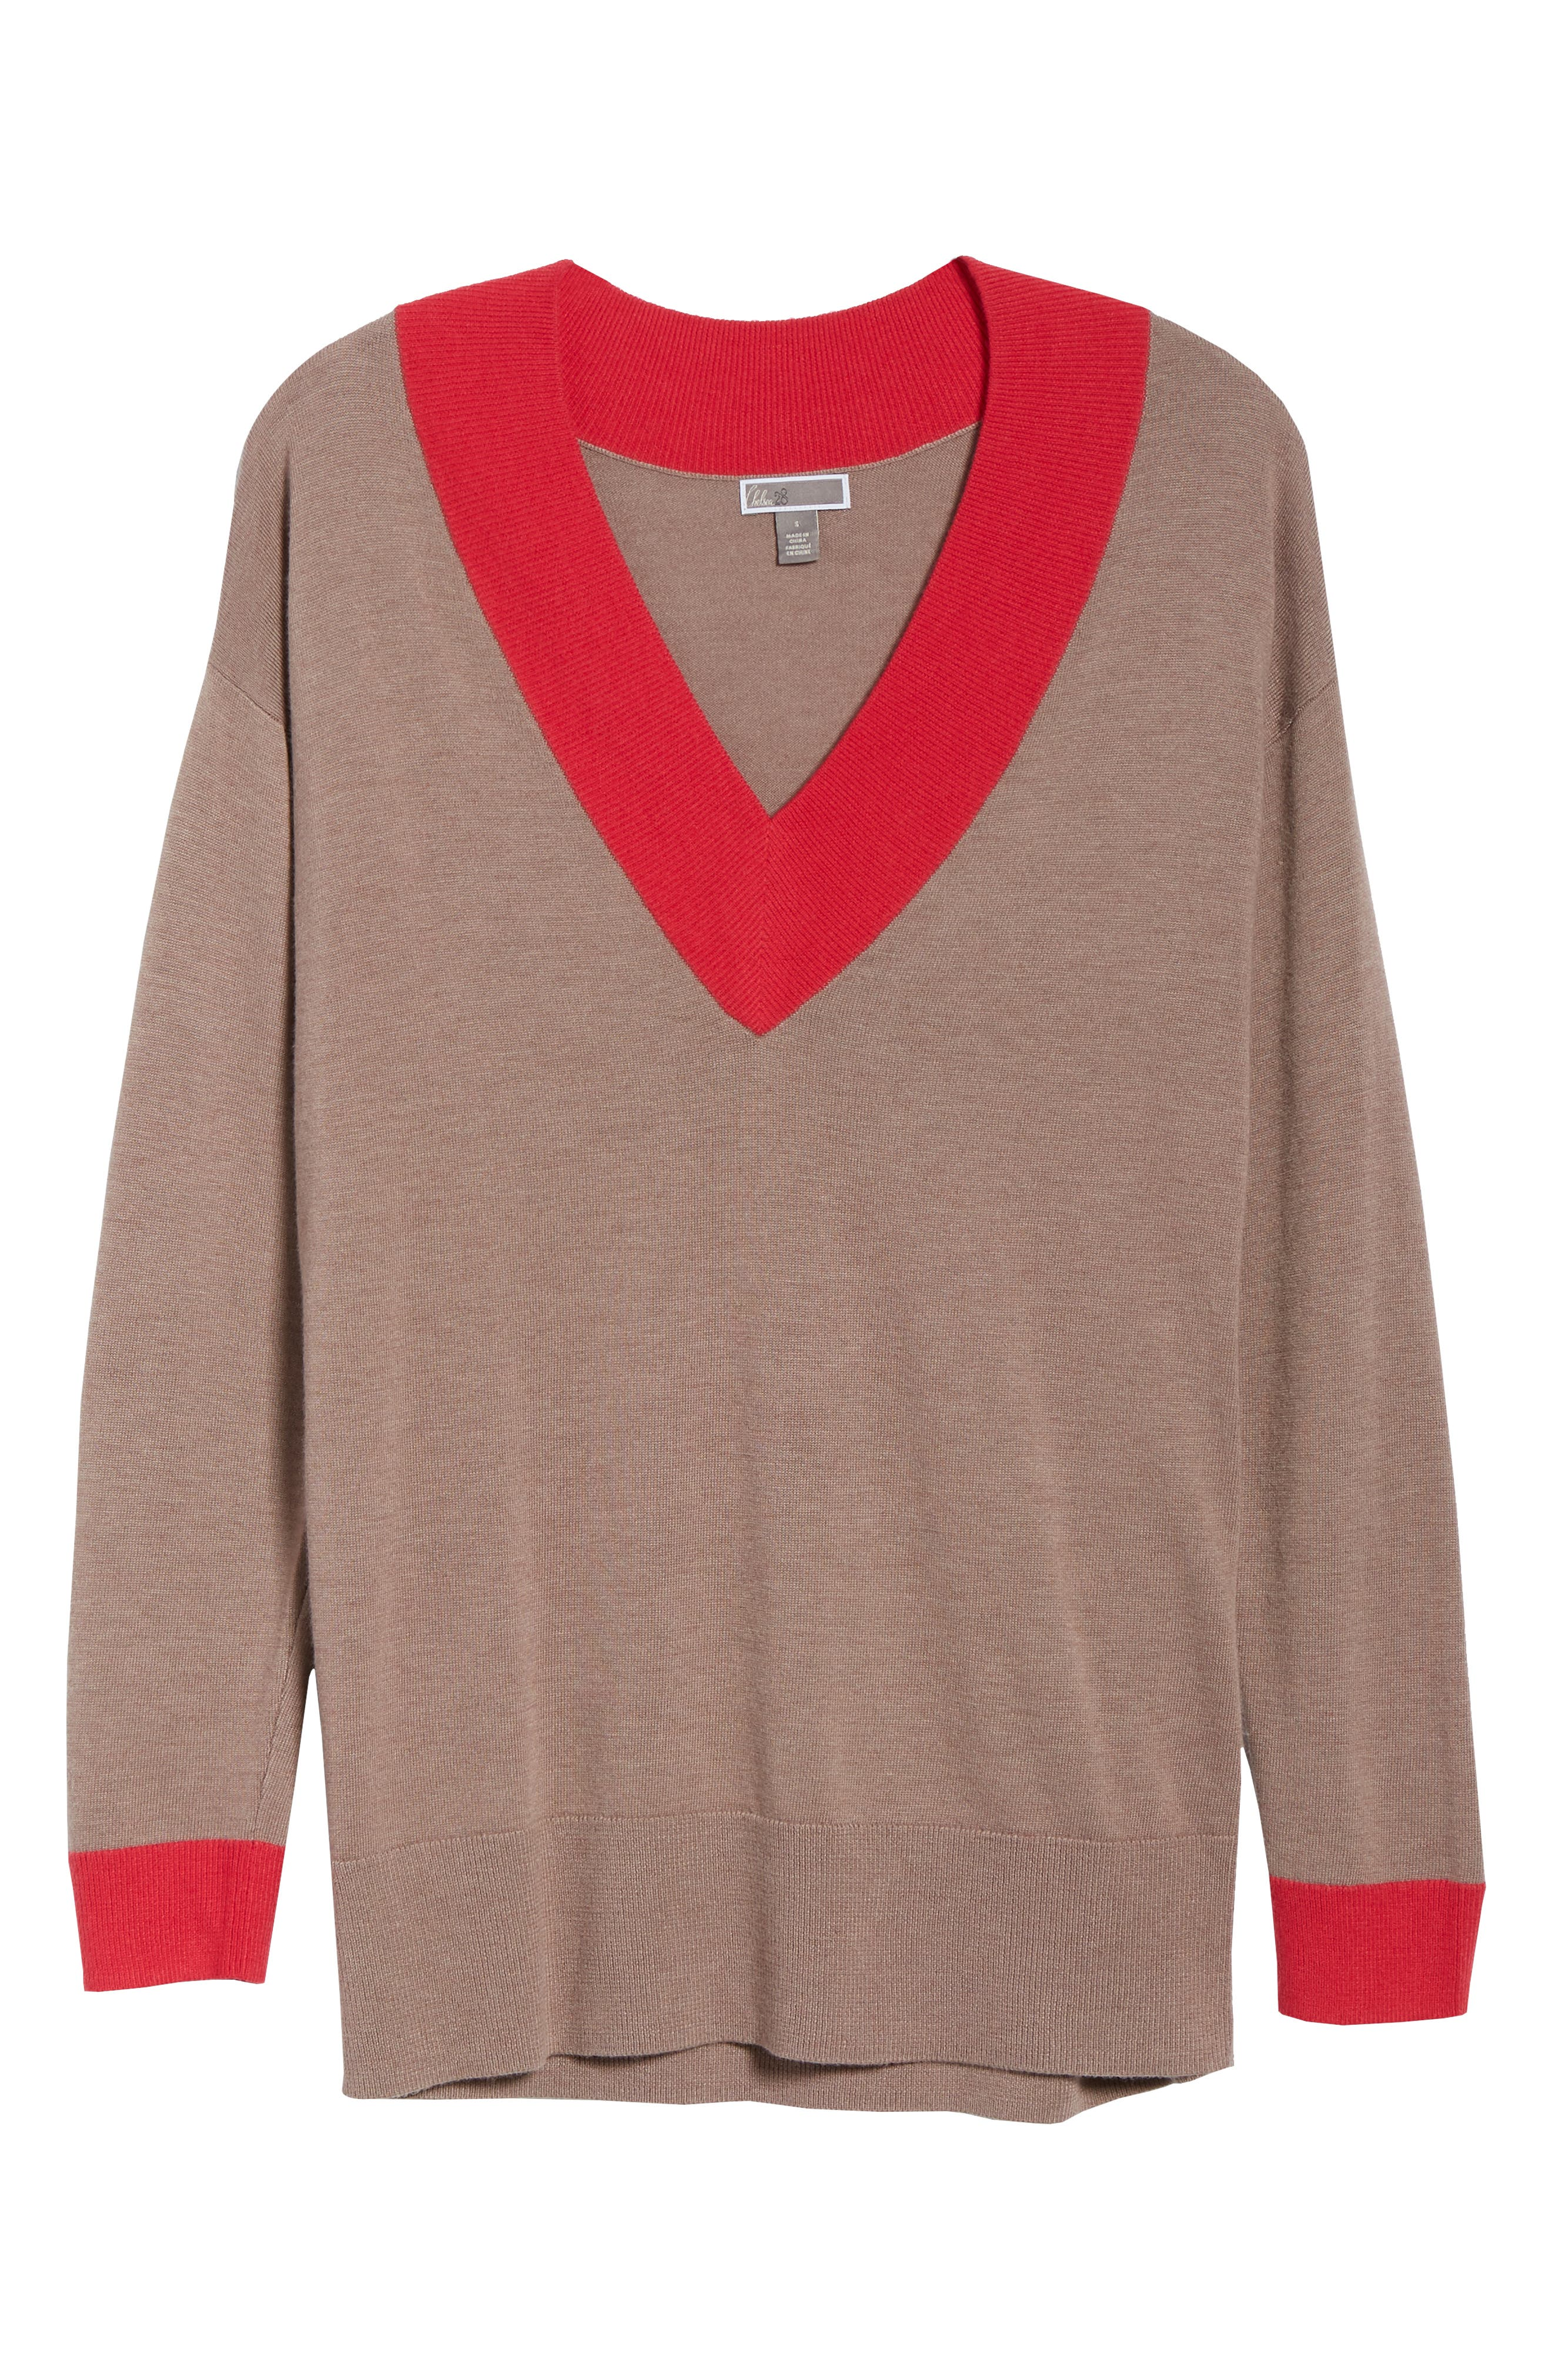 CHELSEA28,                             V-Neck Sweater,                             Alternate thumbnail 6, color,                             PINK FAWN HEATHER COMBO